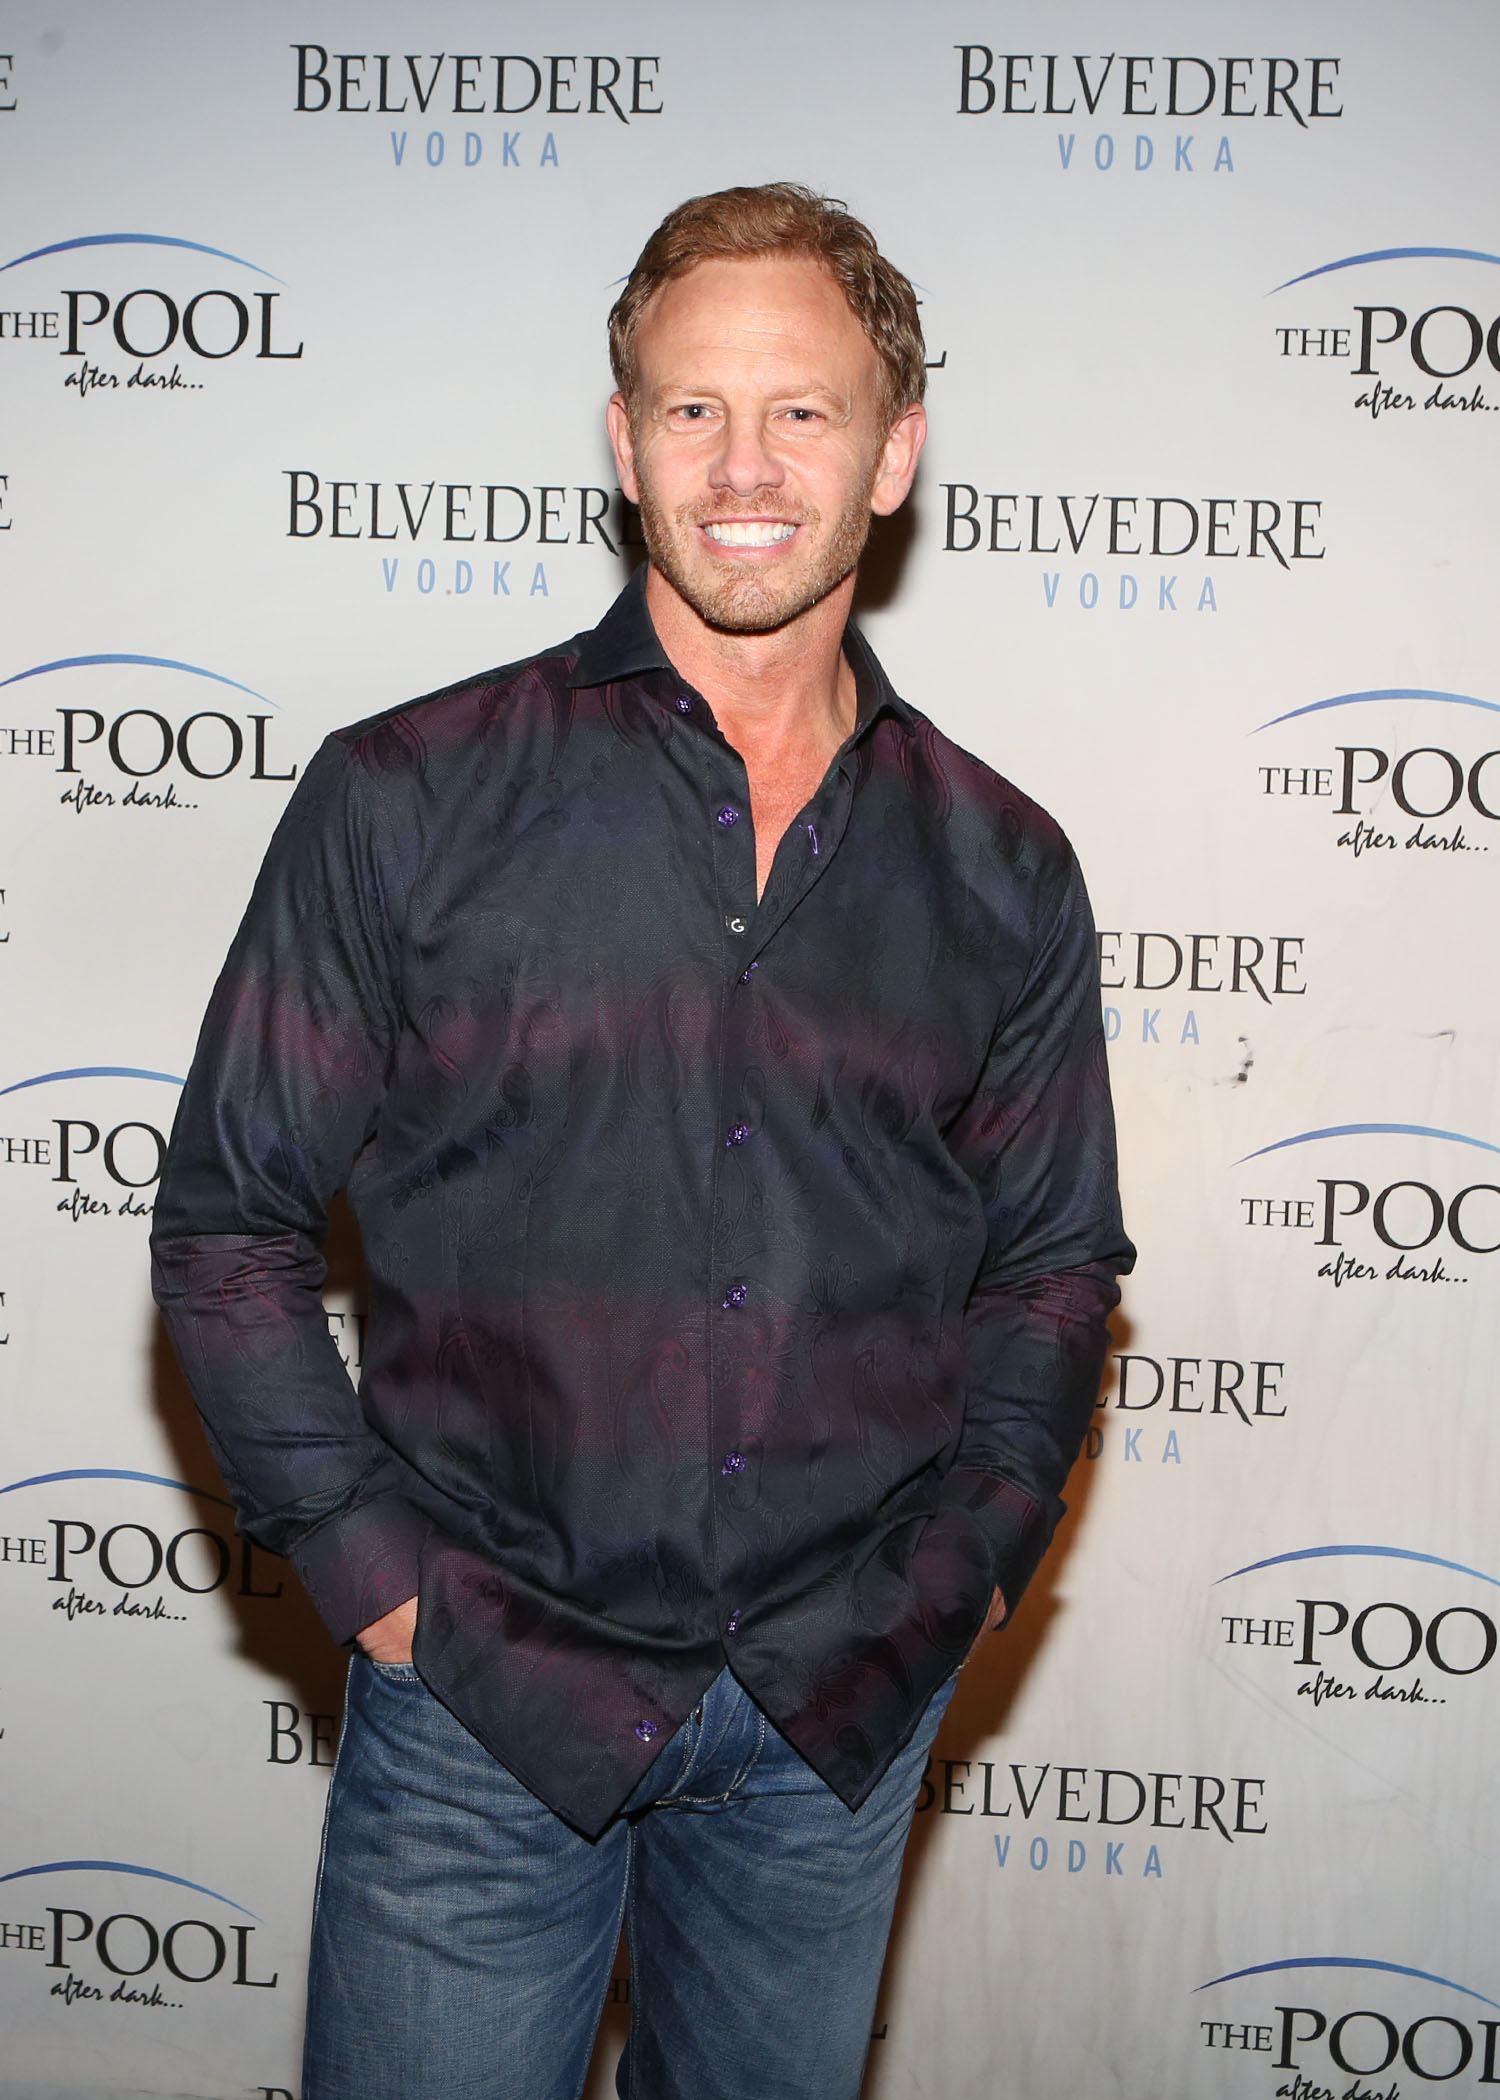 Ian Ziering at The Pool After Dark at Harrah's Atlantic City, where he hosted a party, on May 18. (Tom Briglia /PhotoGraphics)